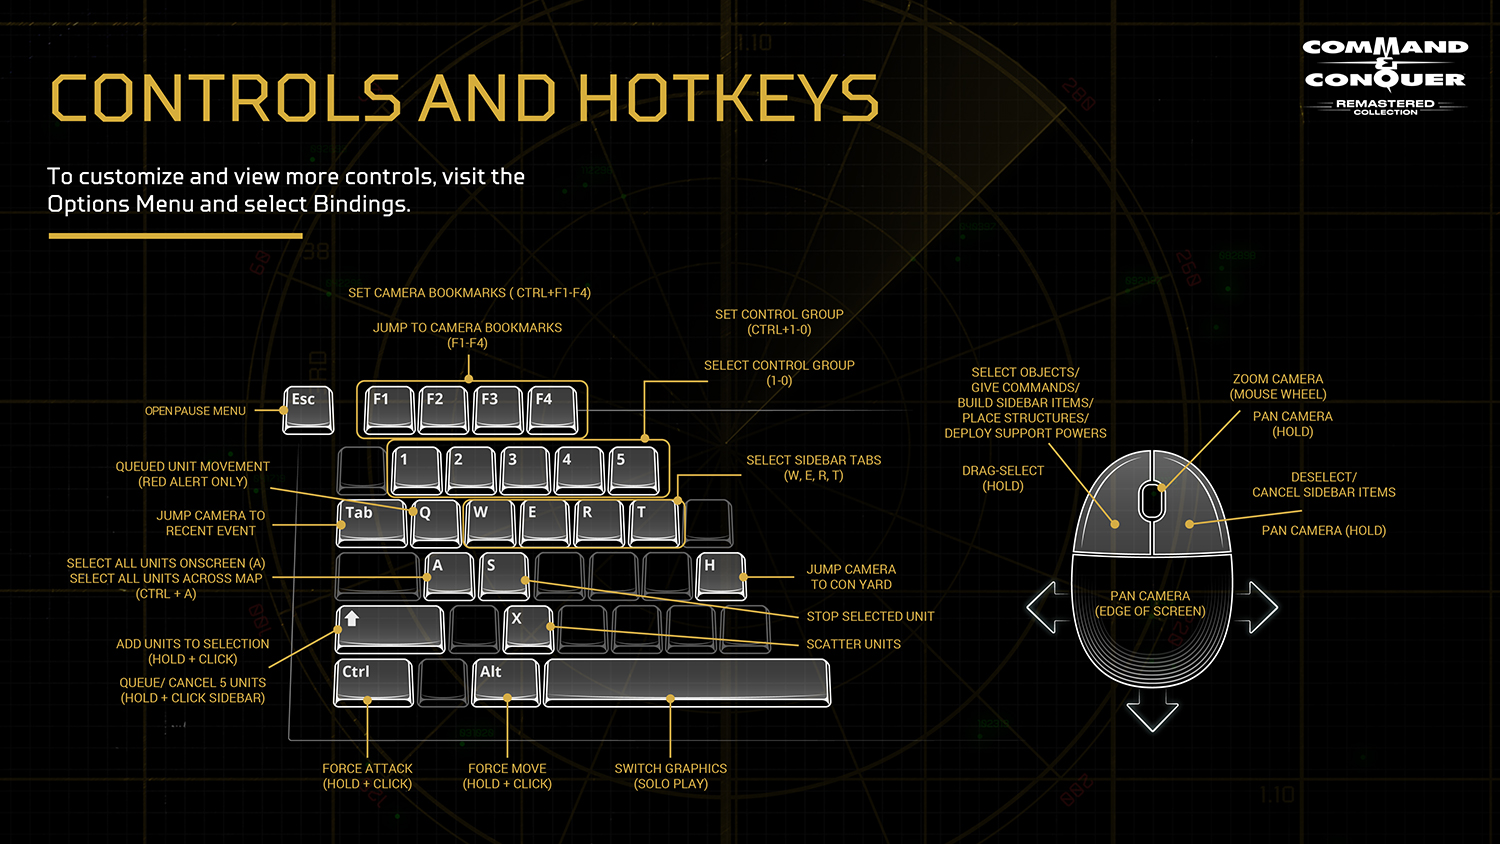 controls and hotkeys Command and Conquer Remastered Hotkeys